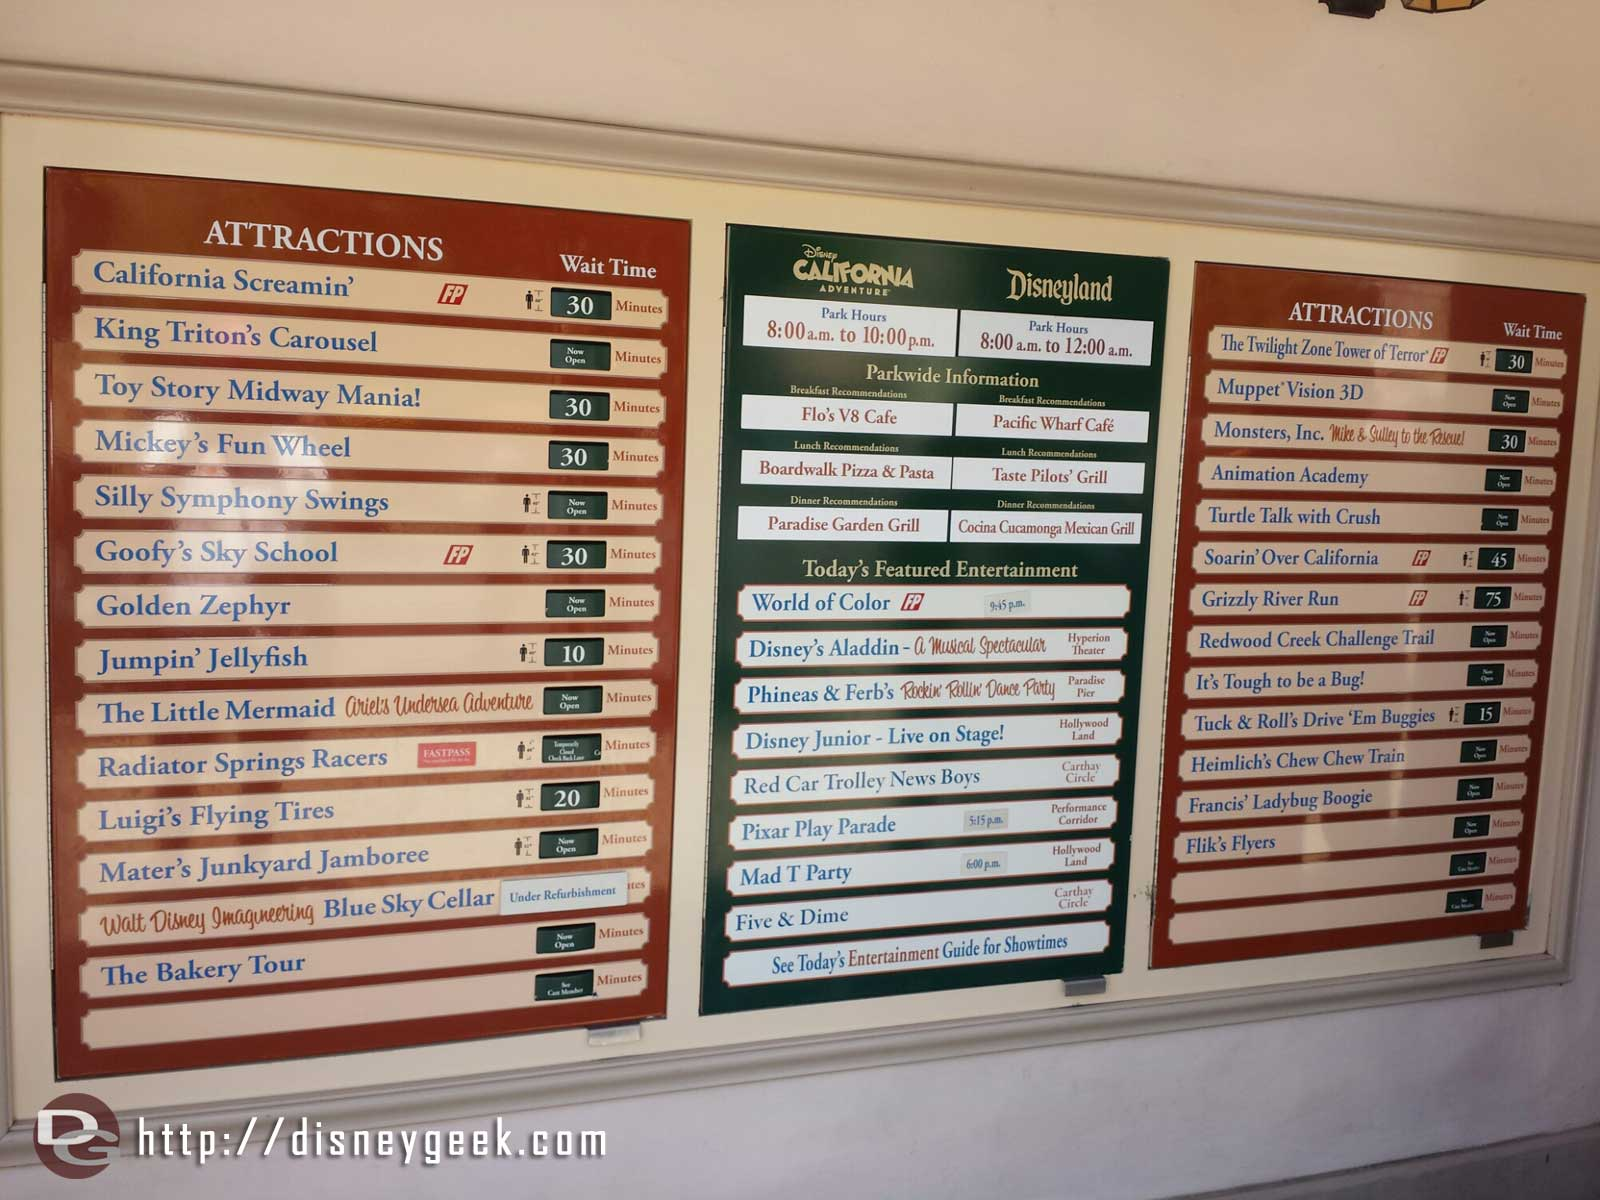 Disney California Adventure waits as of 1:08pm